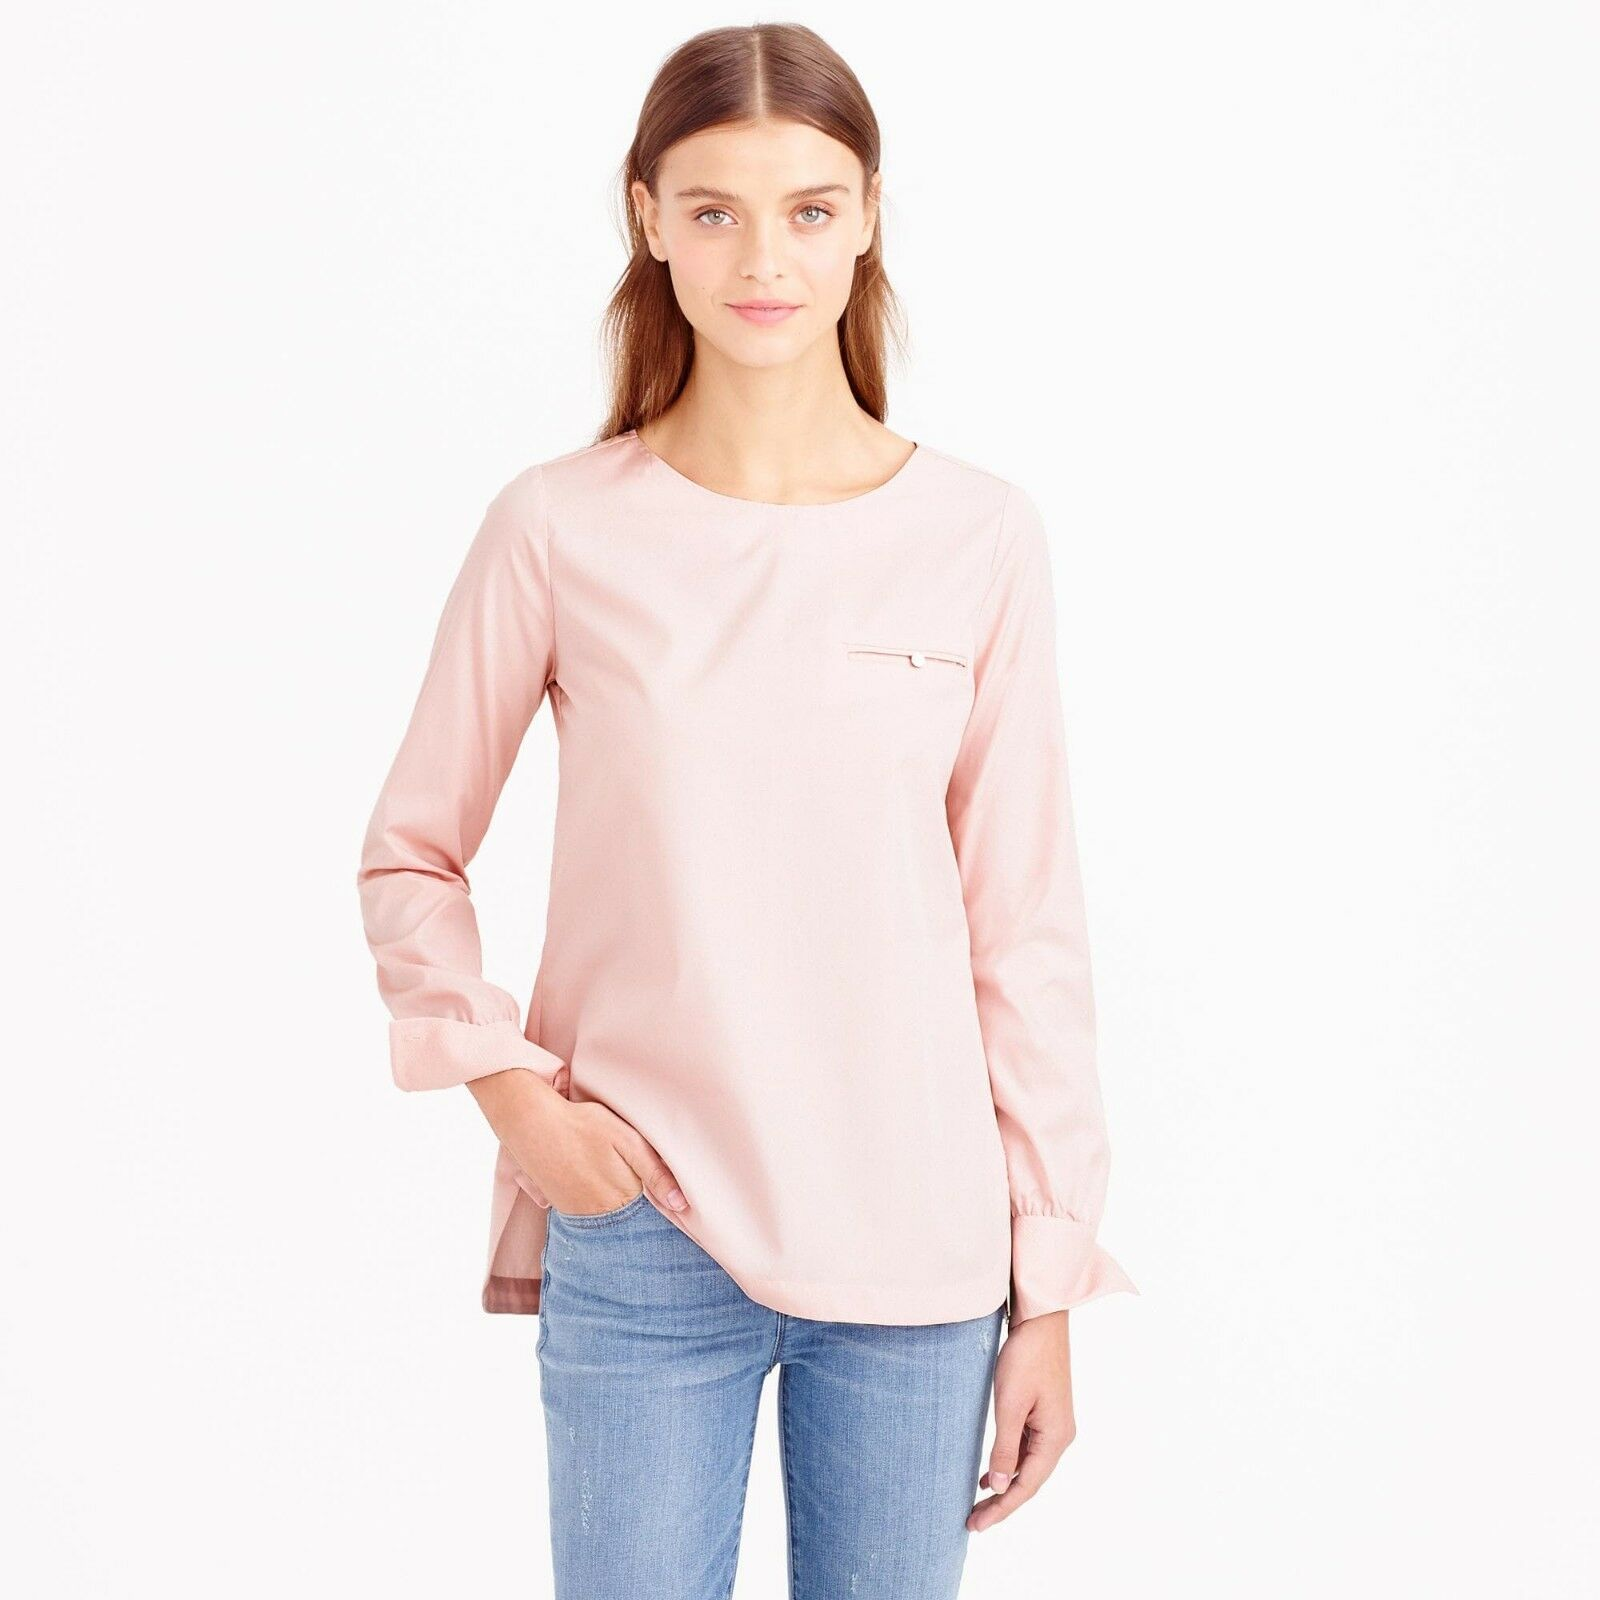 J Crew Poplin Pastel Rosa Rosa Pocket Cotton Blouse Top 8 M